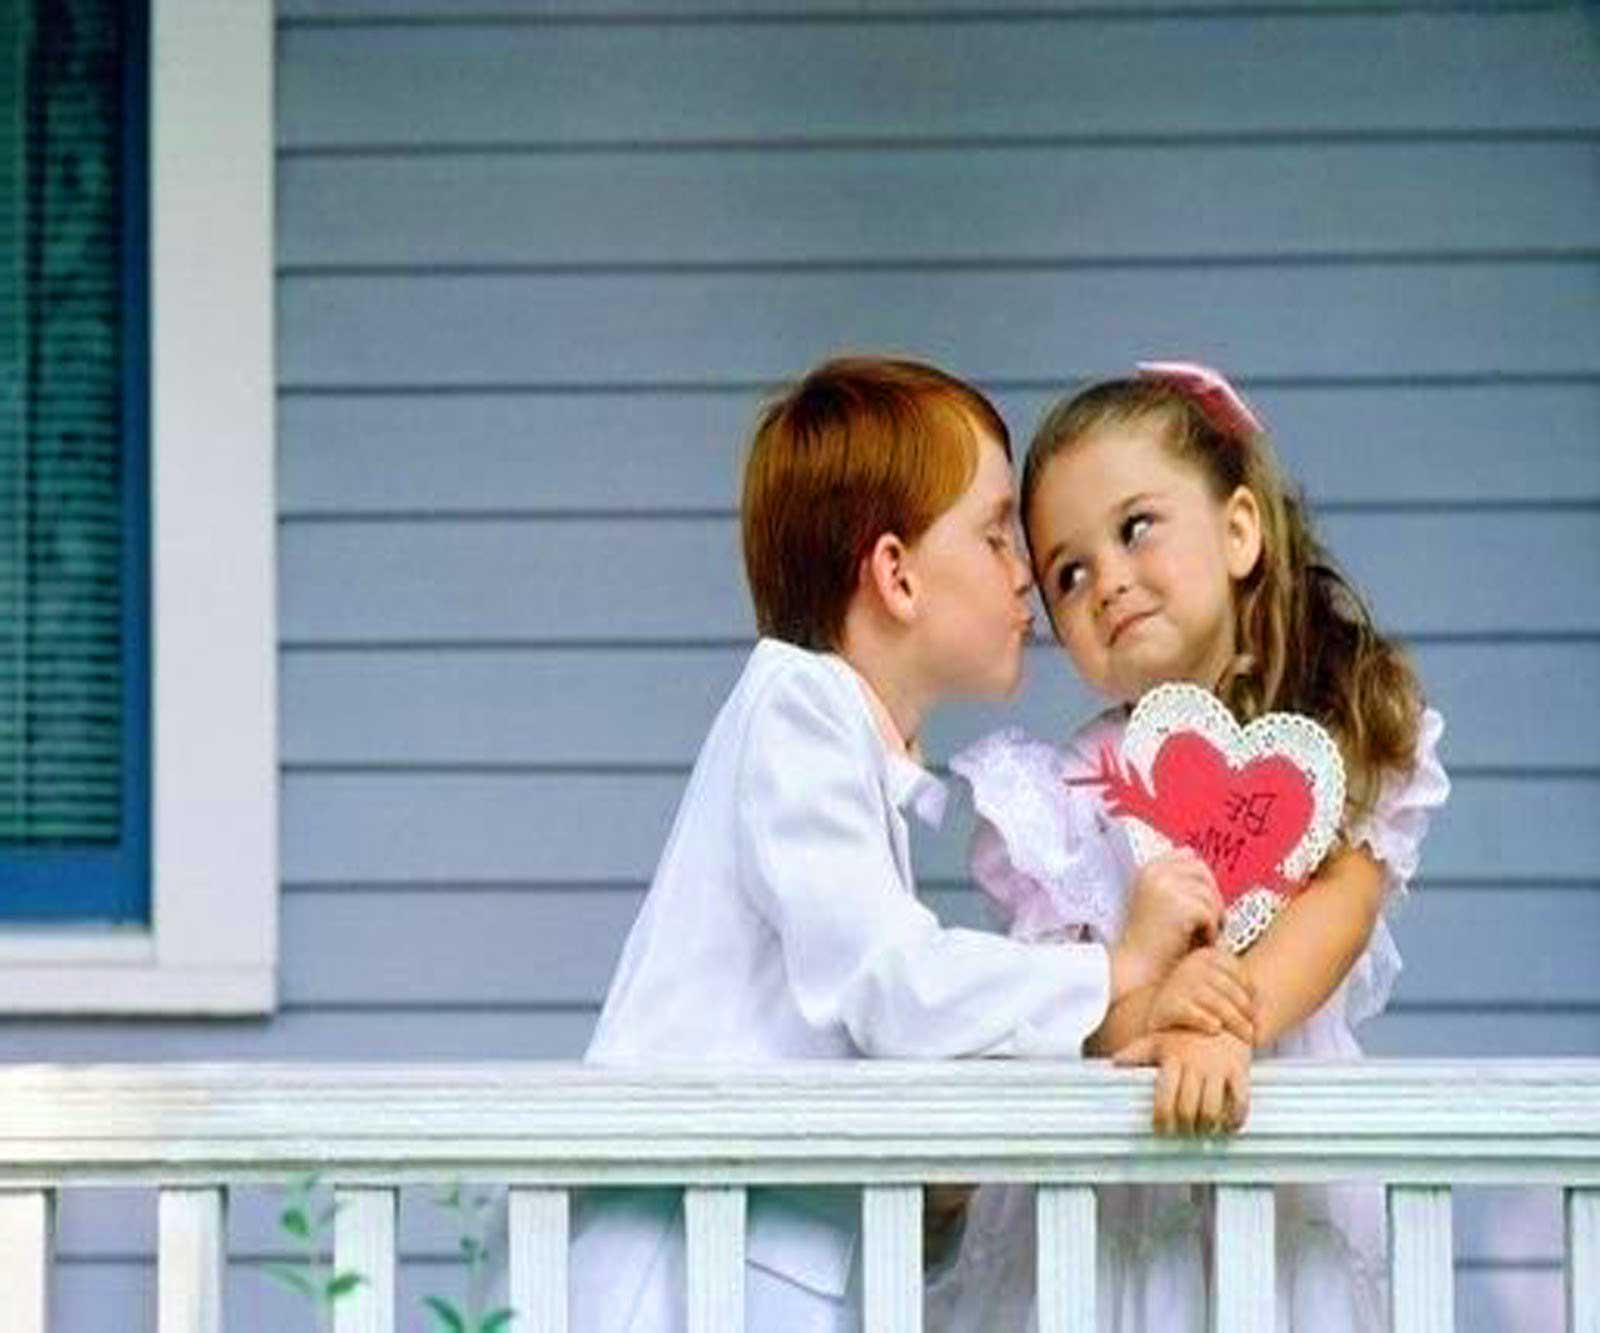 child-love-couple-photo